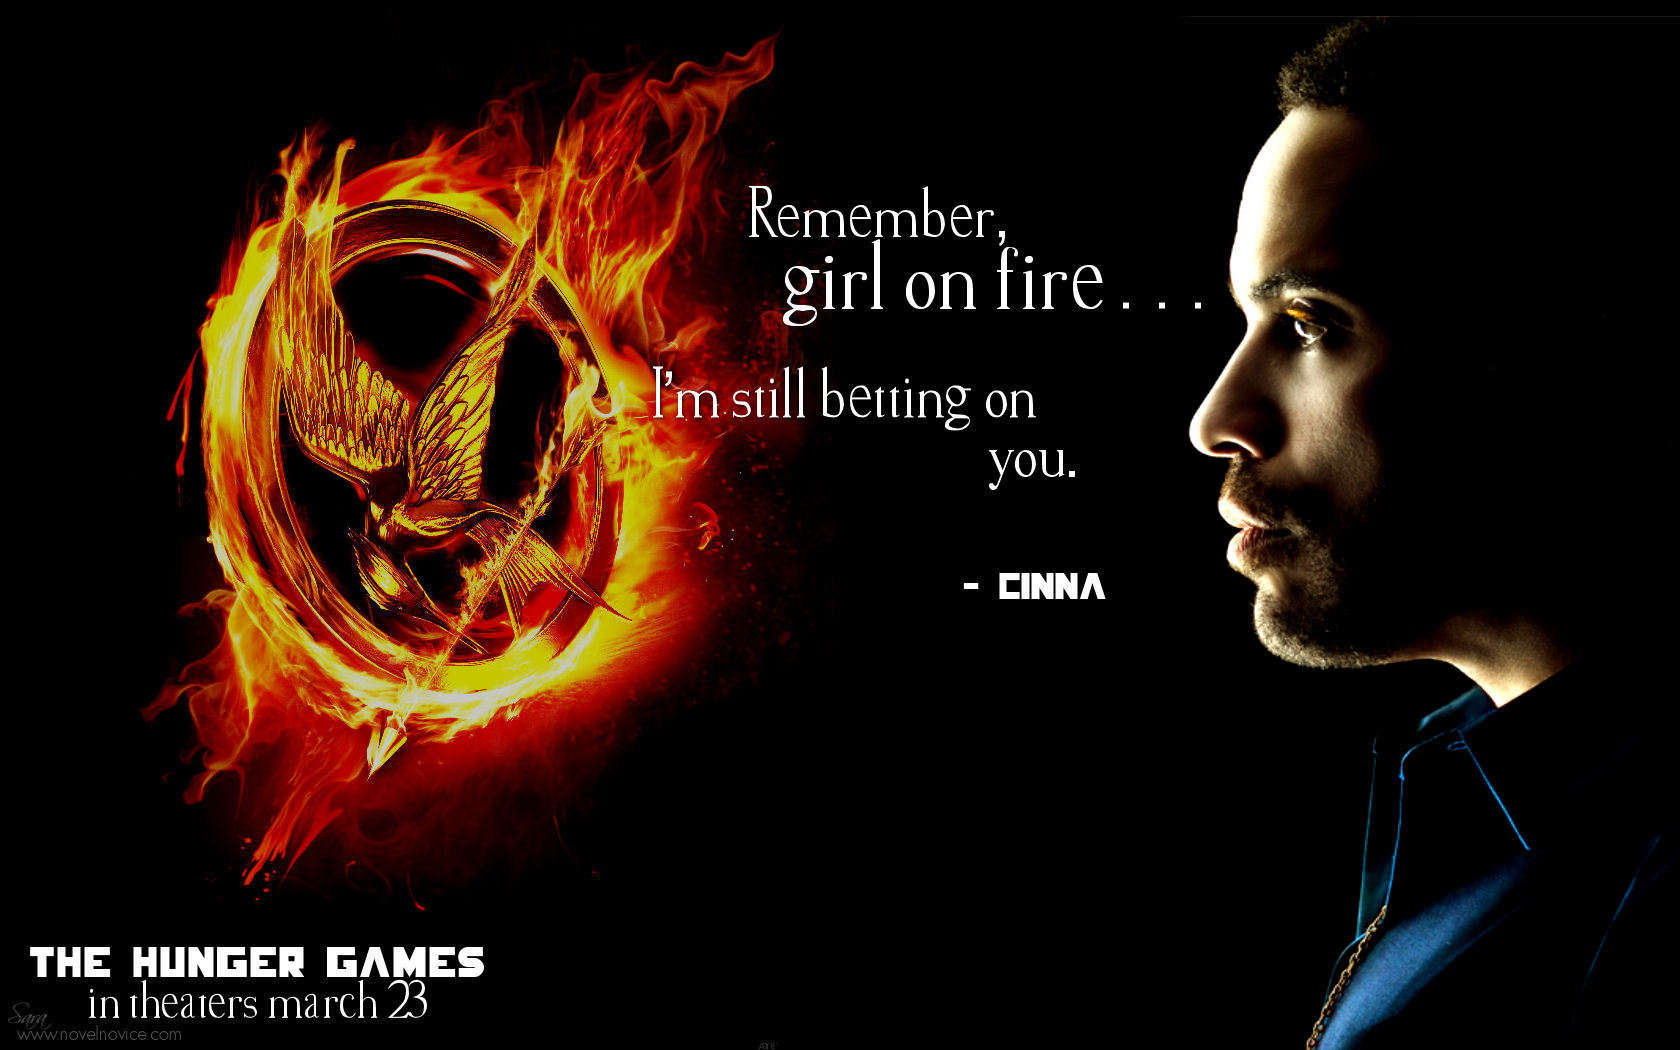 the hunger games movie character desktop wallpapers